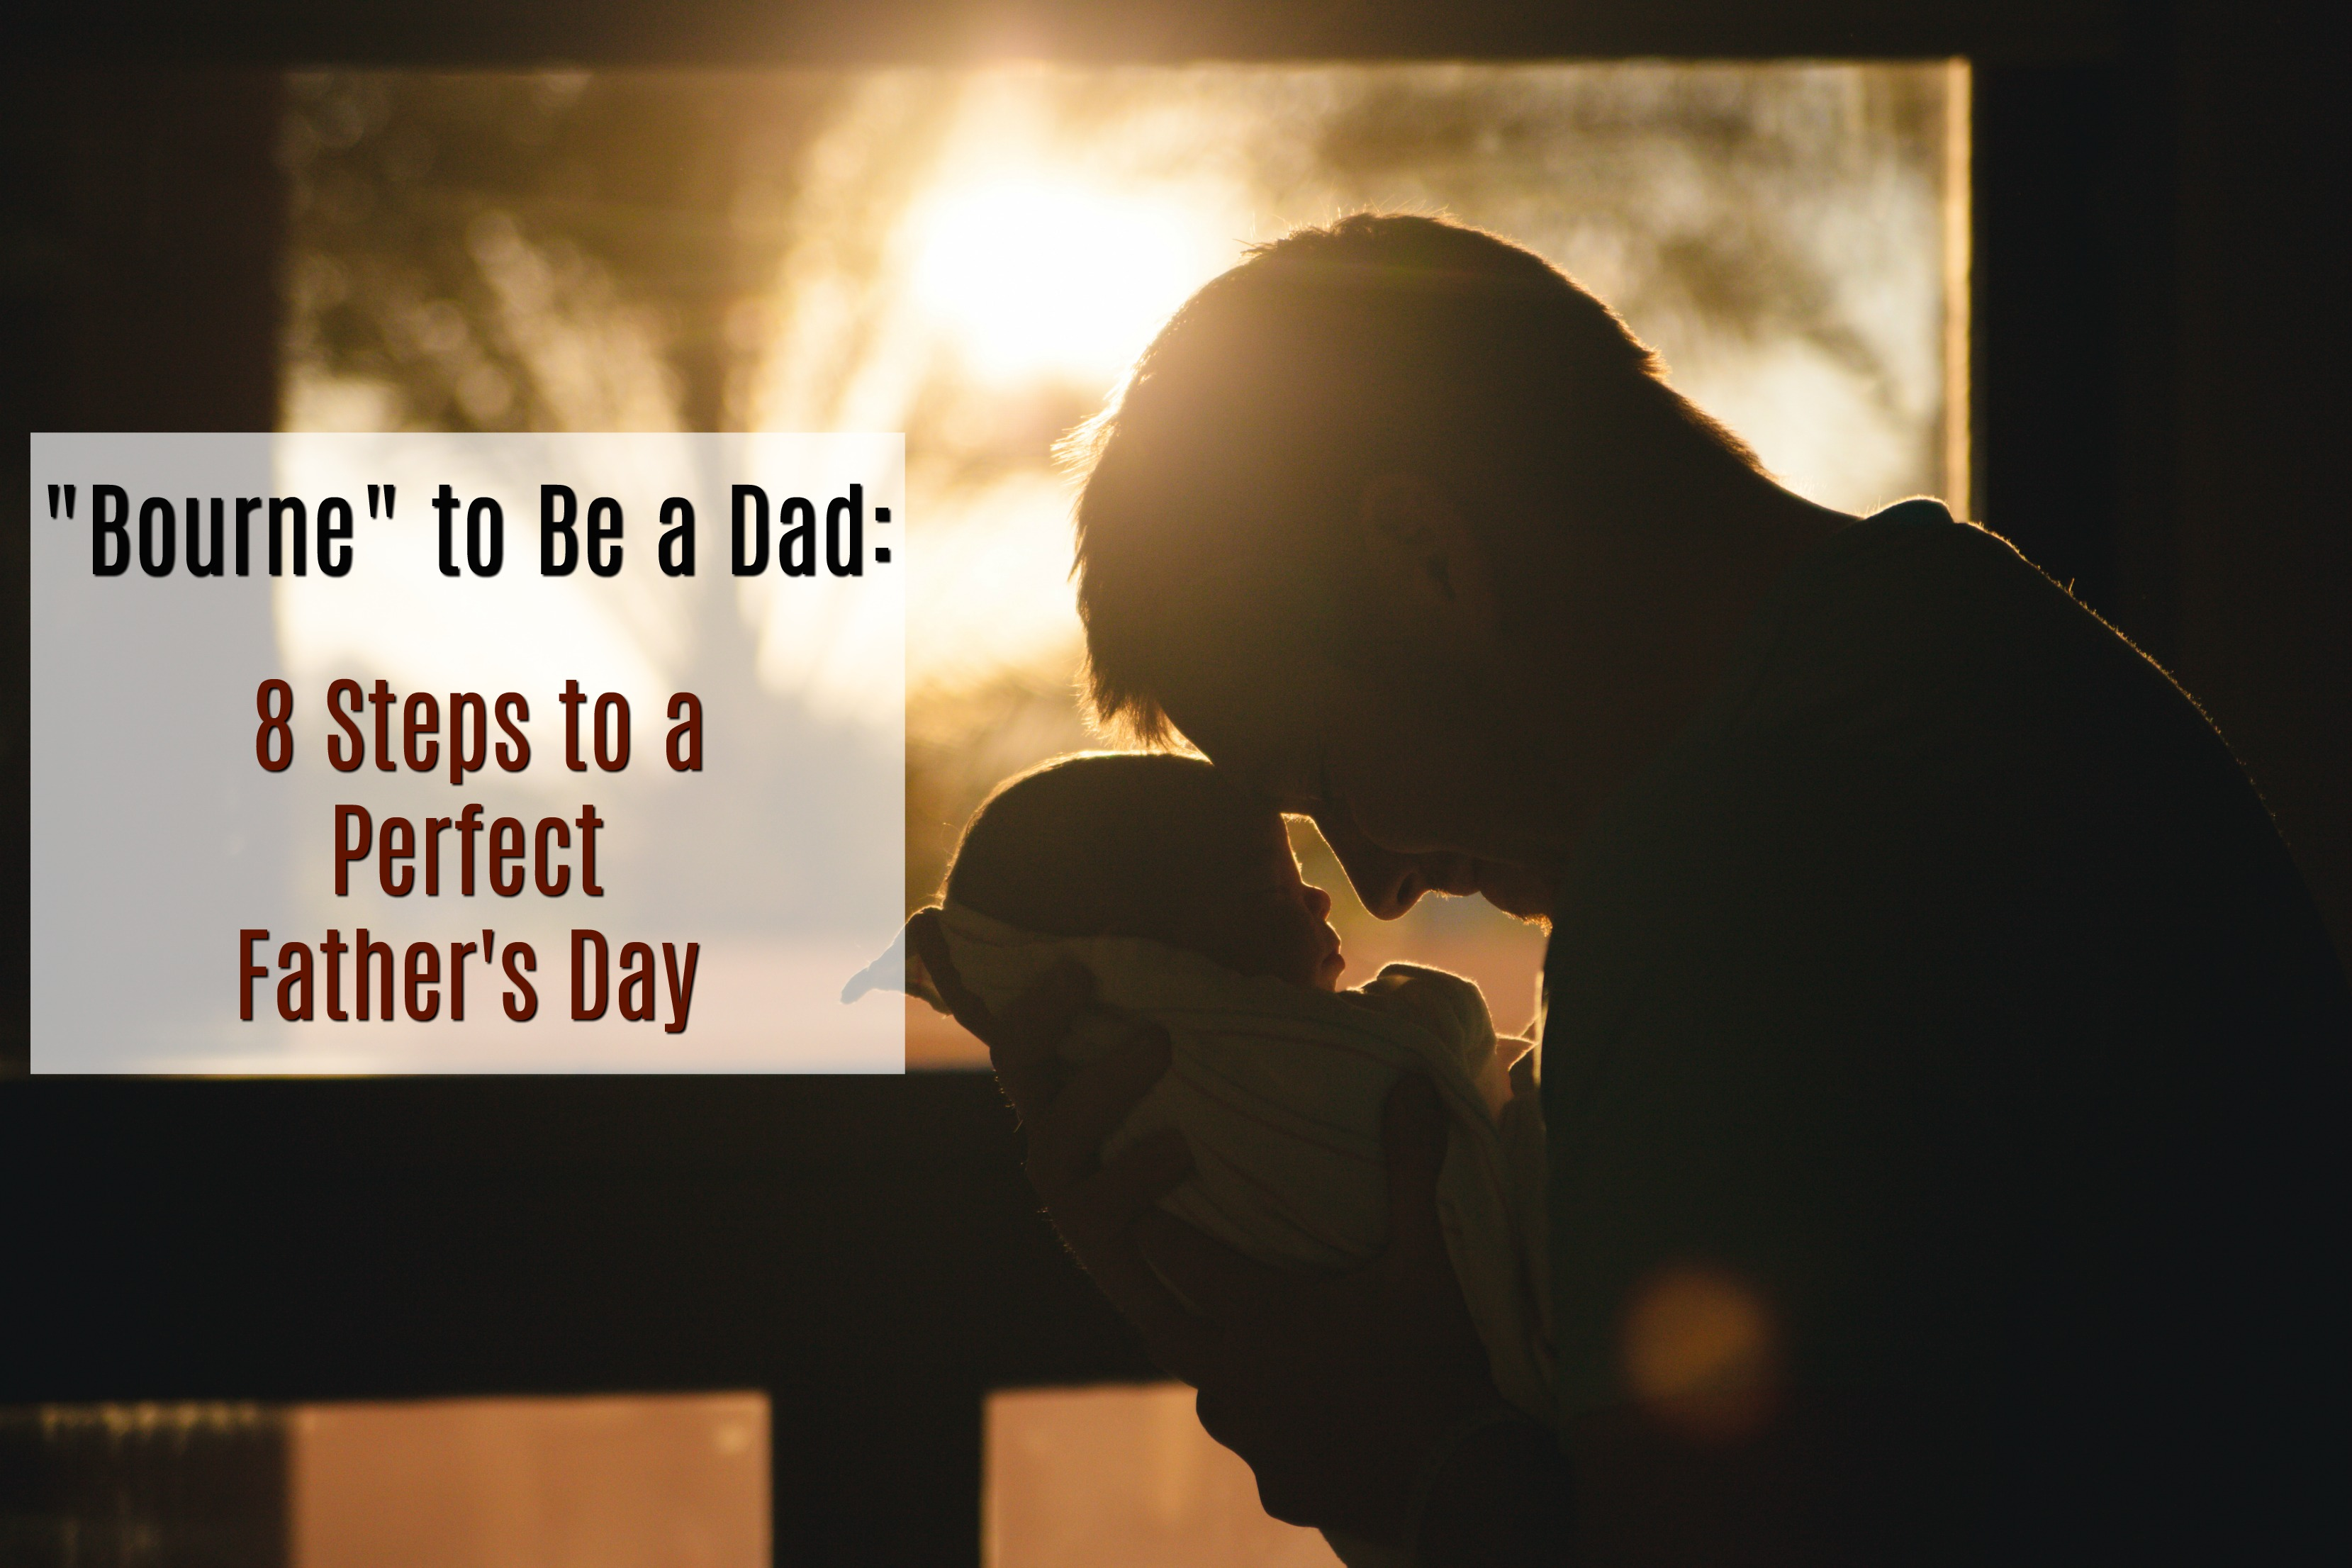 """Bourne"" to Be a Dad: 8 Steps to a Perfect Father's Day"